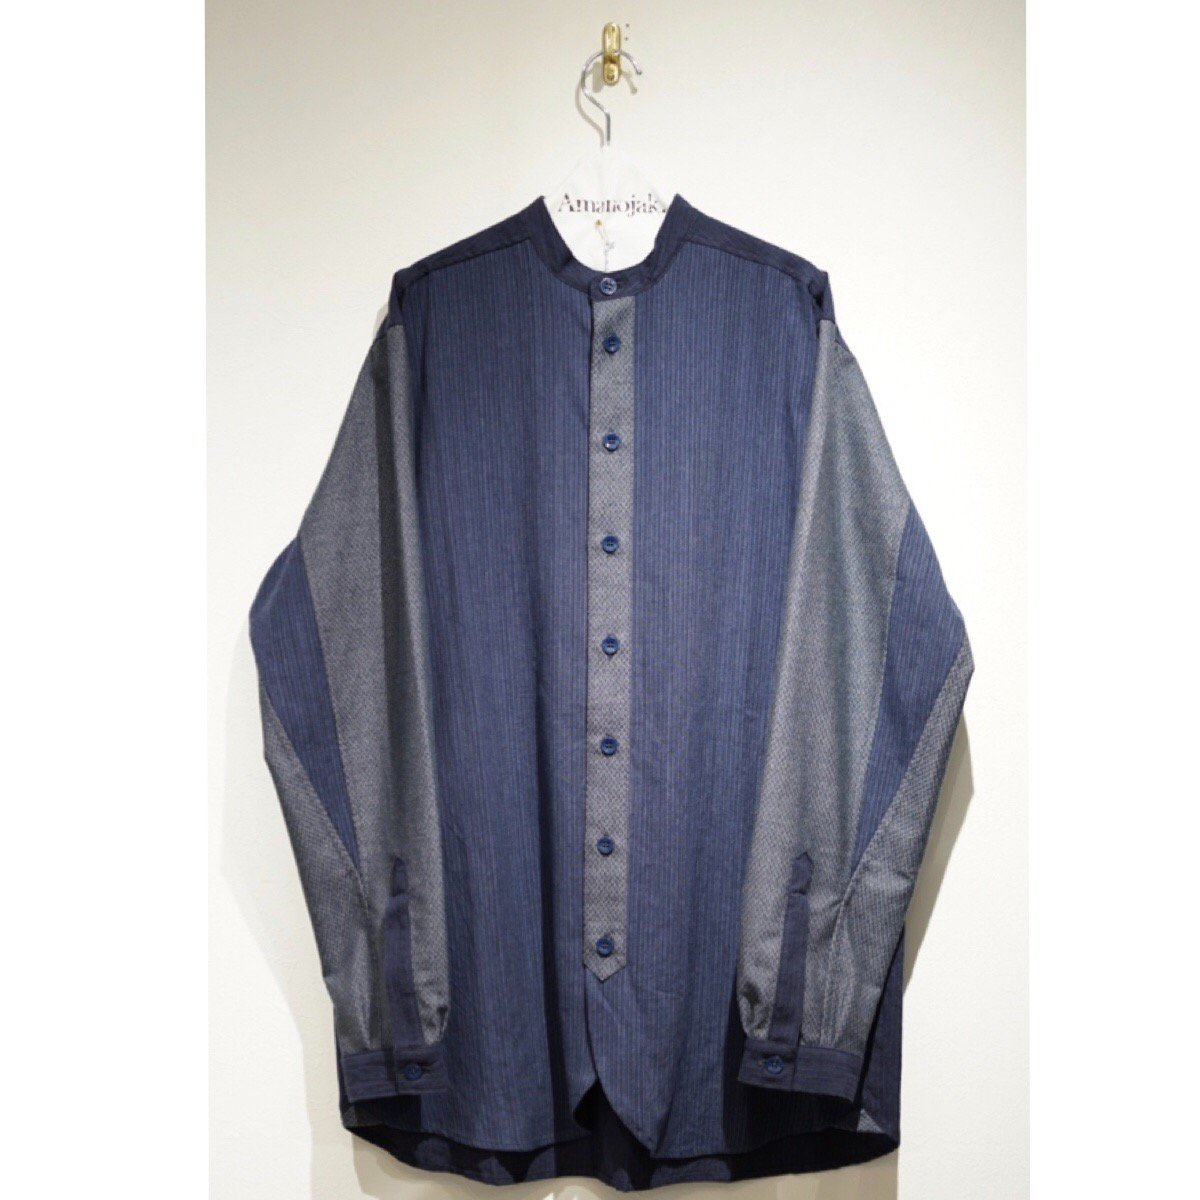 FRANK LEDER-VINTAGE FABRIC EDITION STAND COLLAR SHIRTS